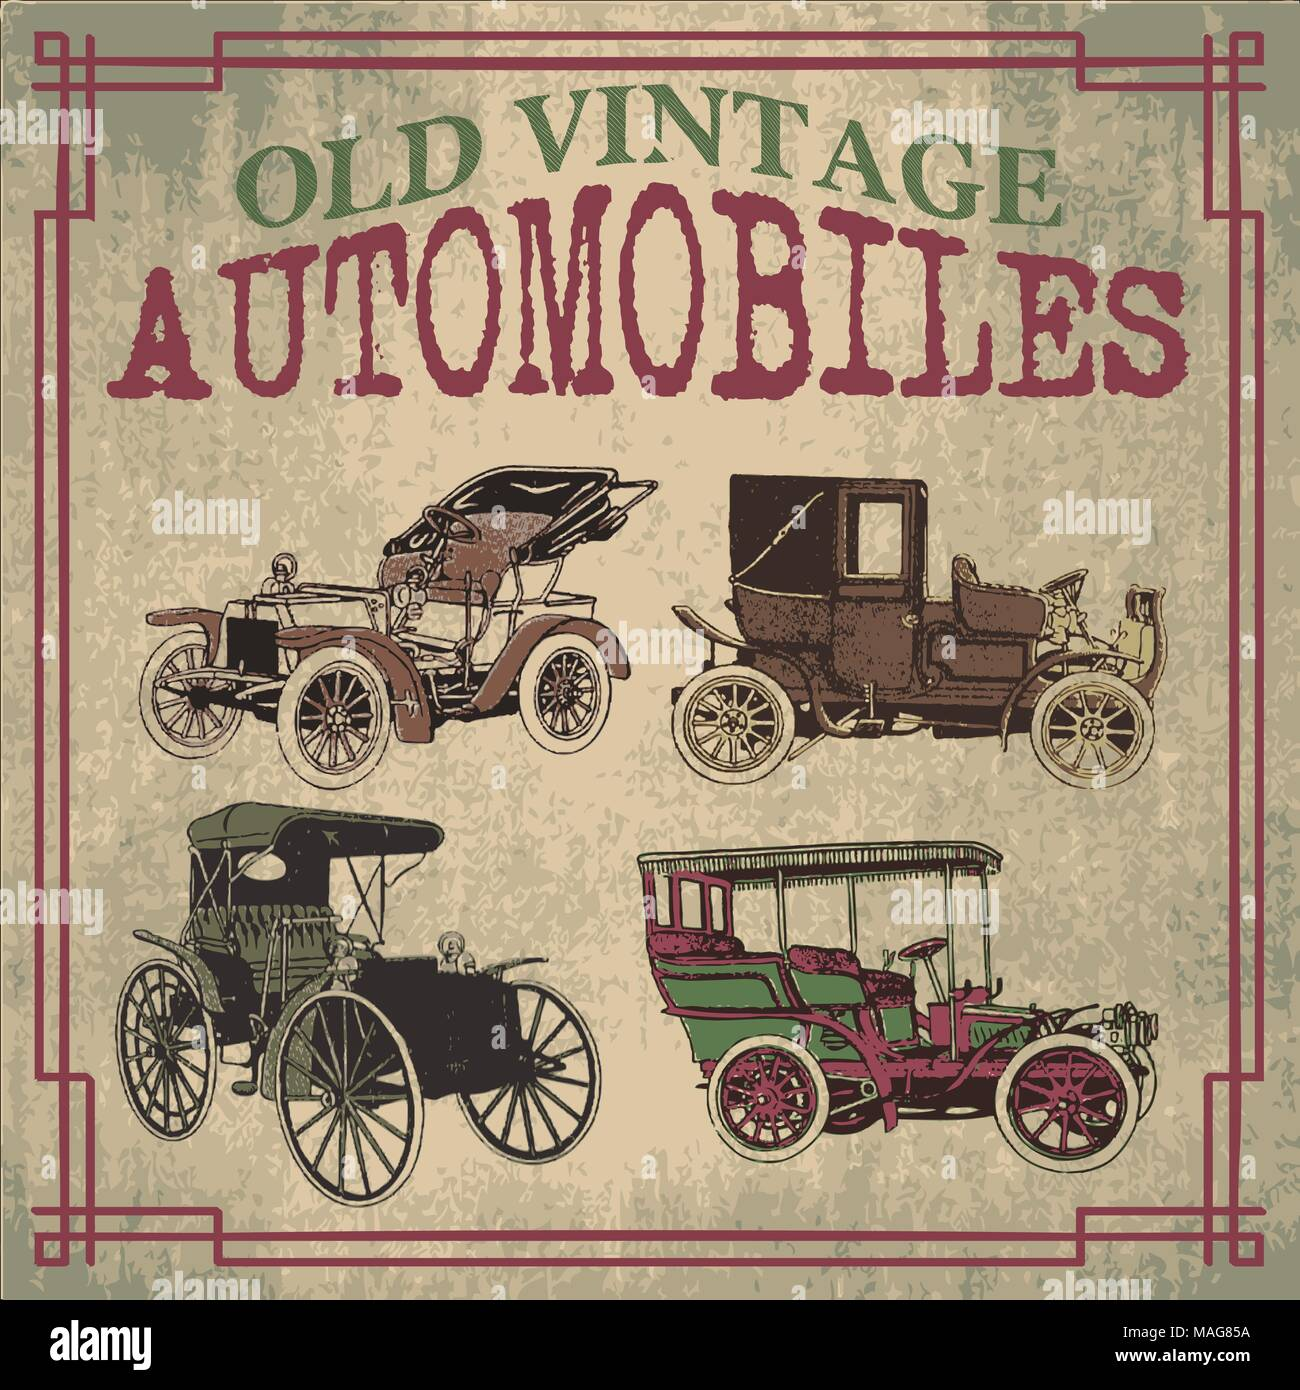 Old and vintage automobiles cars designs in vector - Stock Image